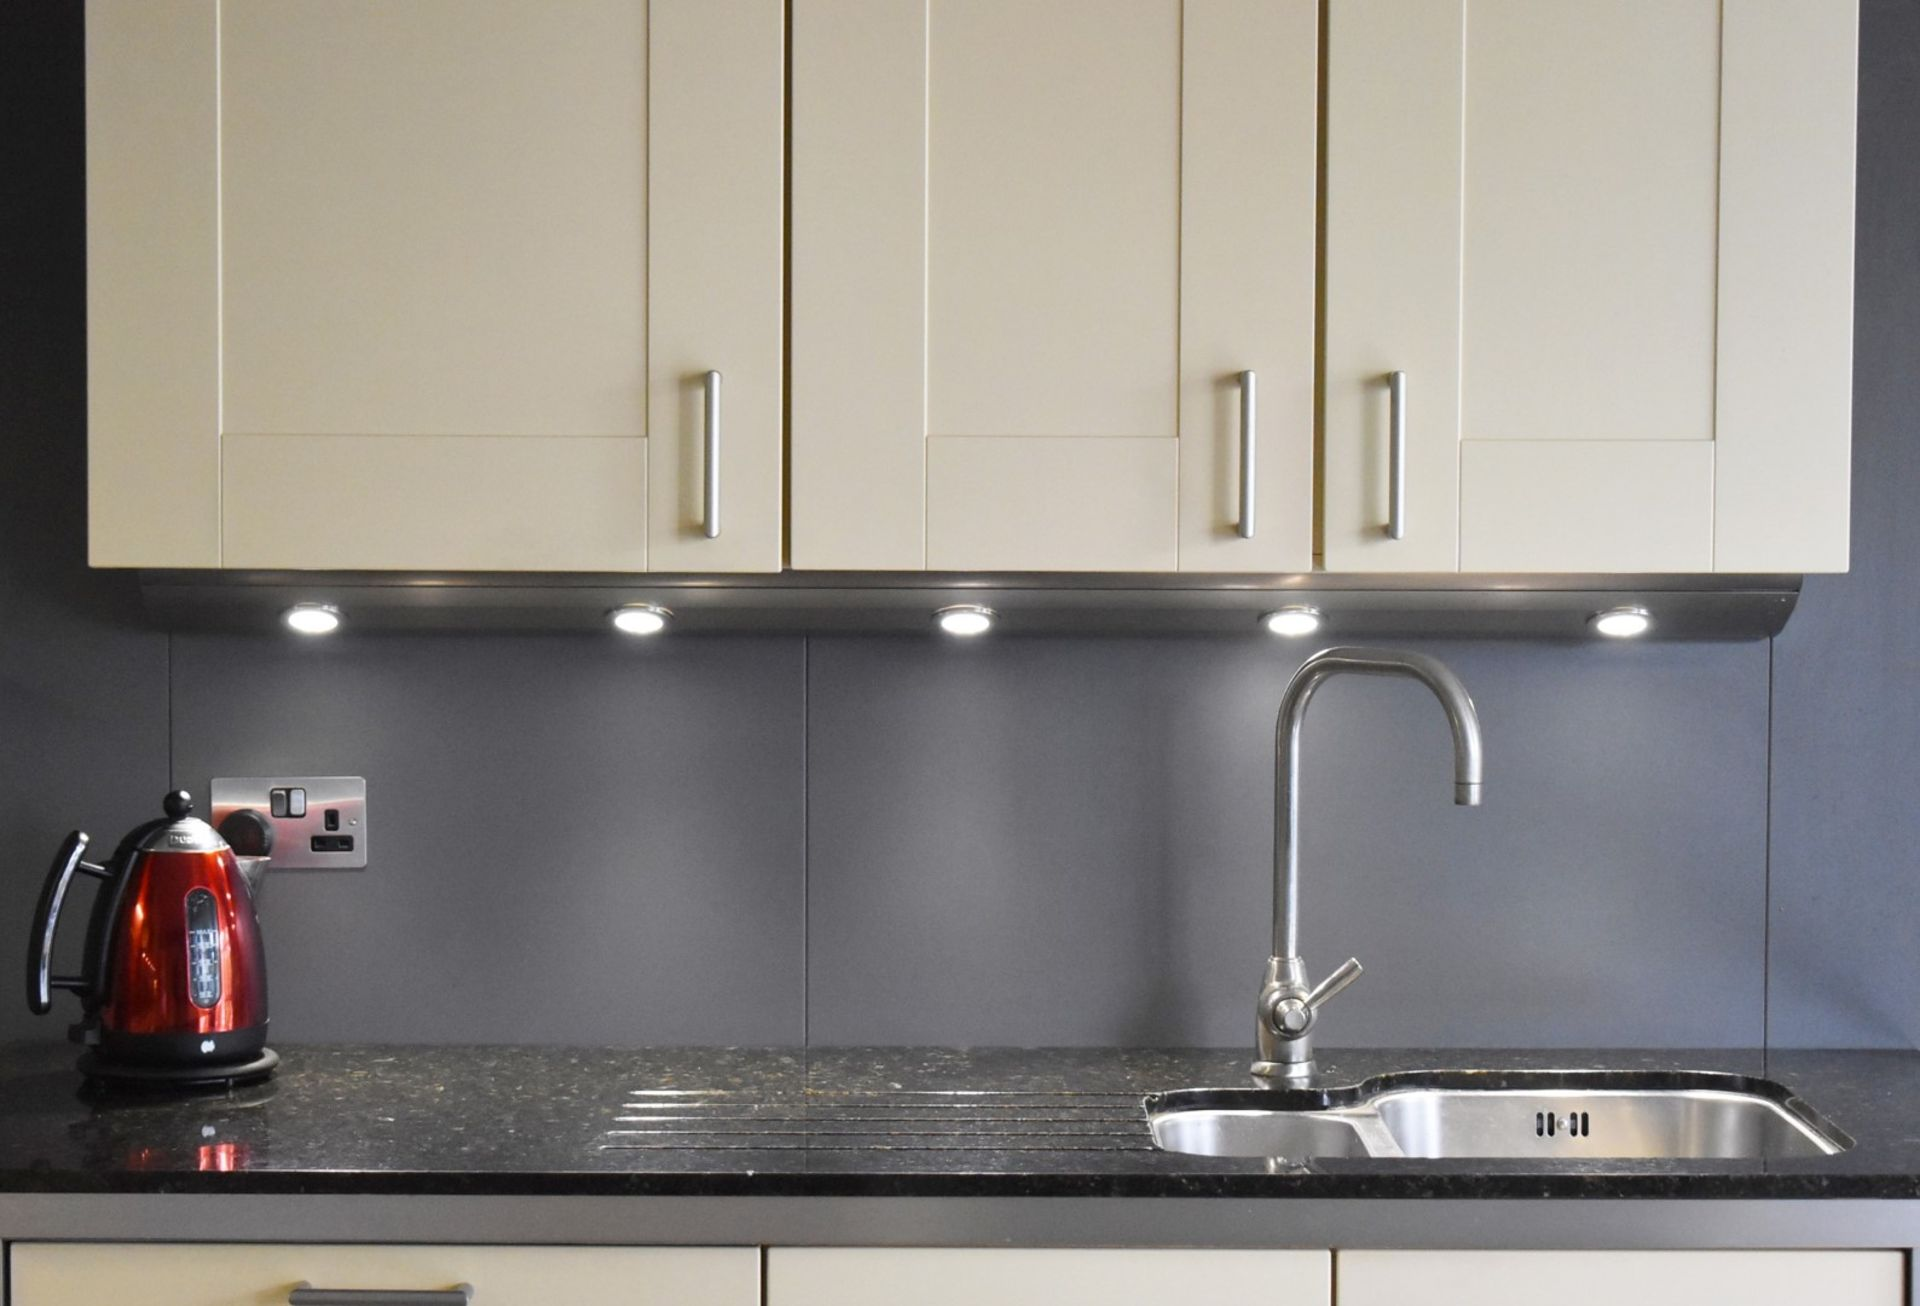 1 x SieMatic Contemporary Fitted Kitchen With Appliances - Features Shaker Style Doors, Central - Image 59 of 96